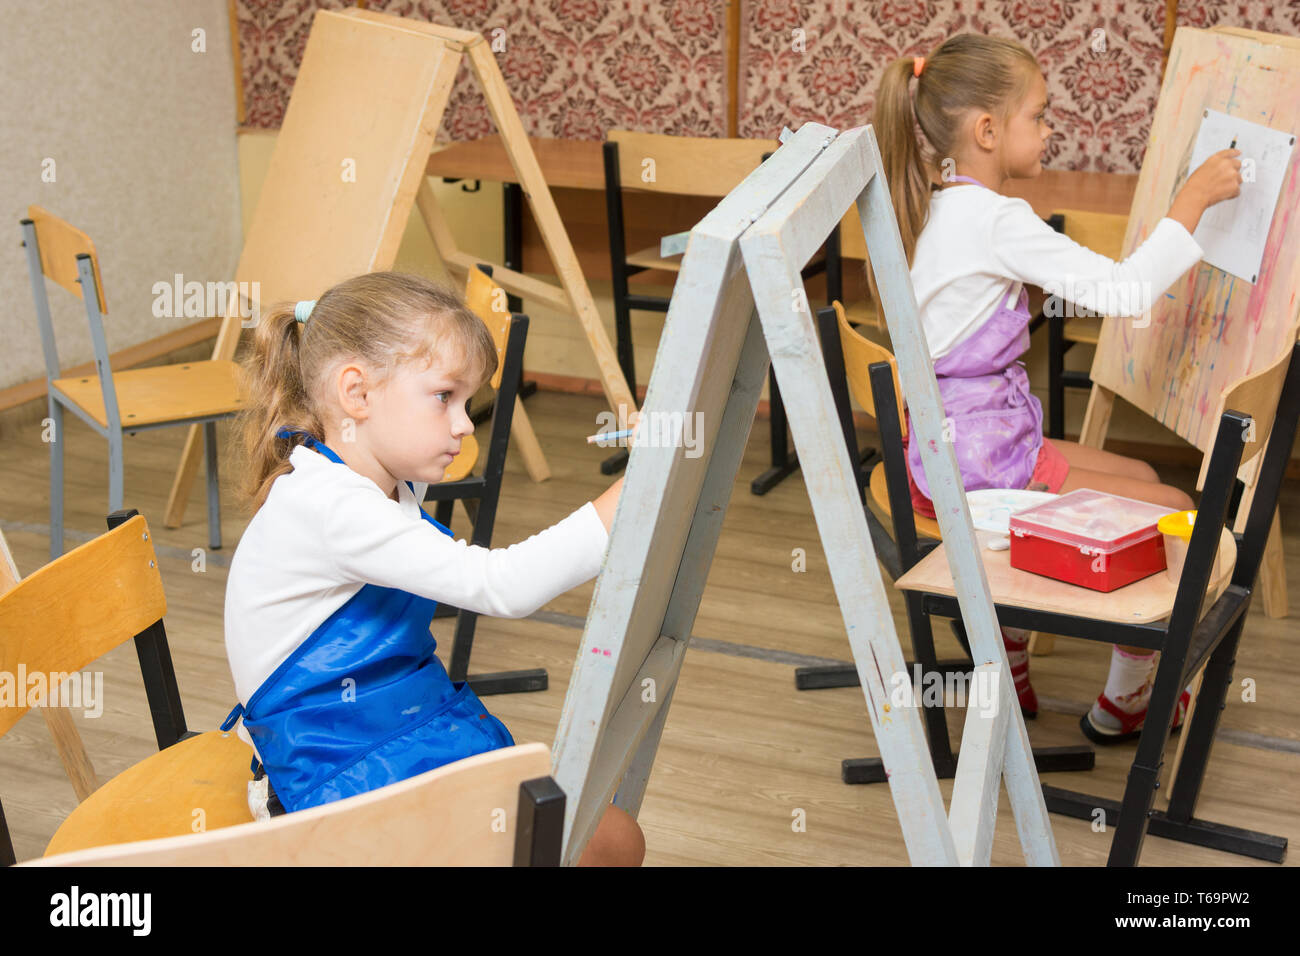 Two girls at a drawing lesson paint on easels - Stock Image